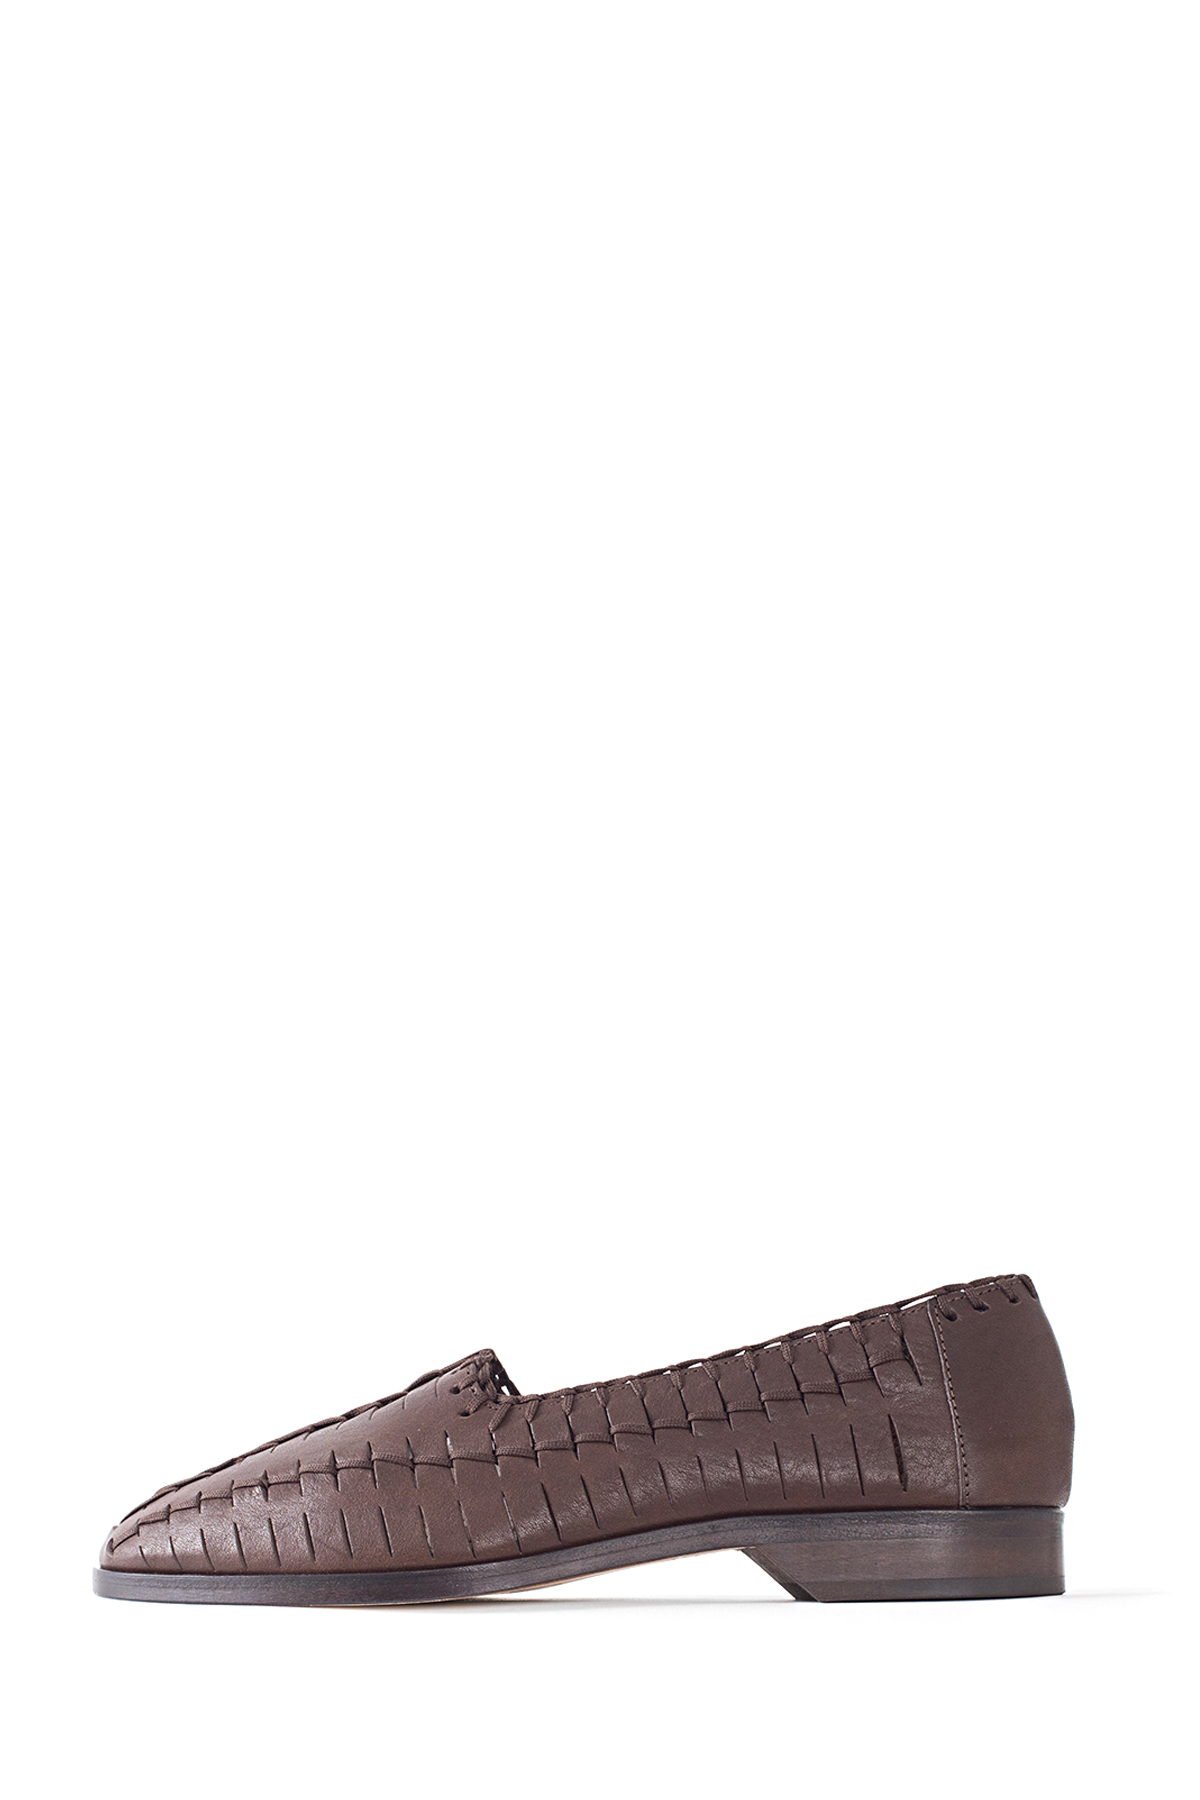 Hender Scheme : Code Mock (Dark Brown)